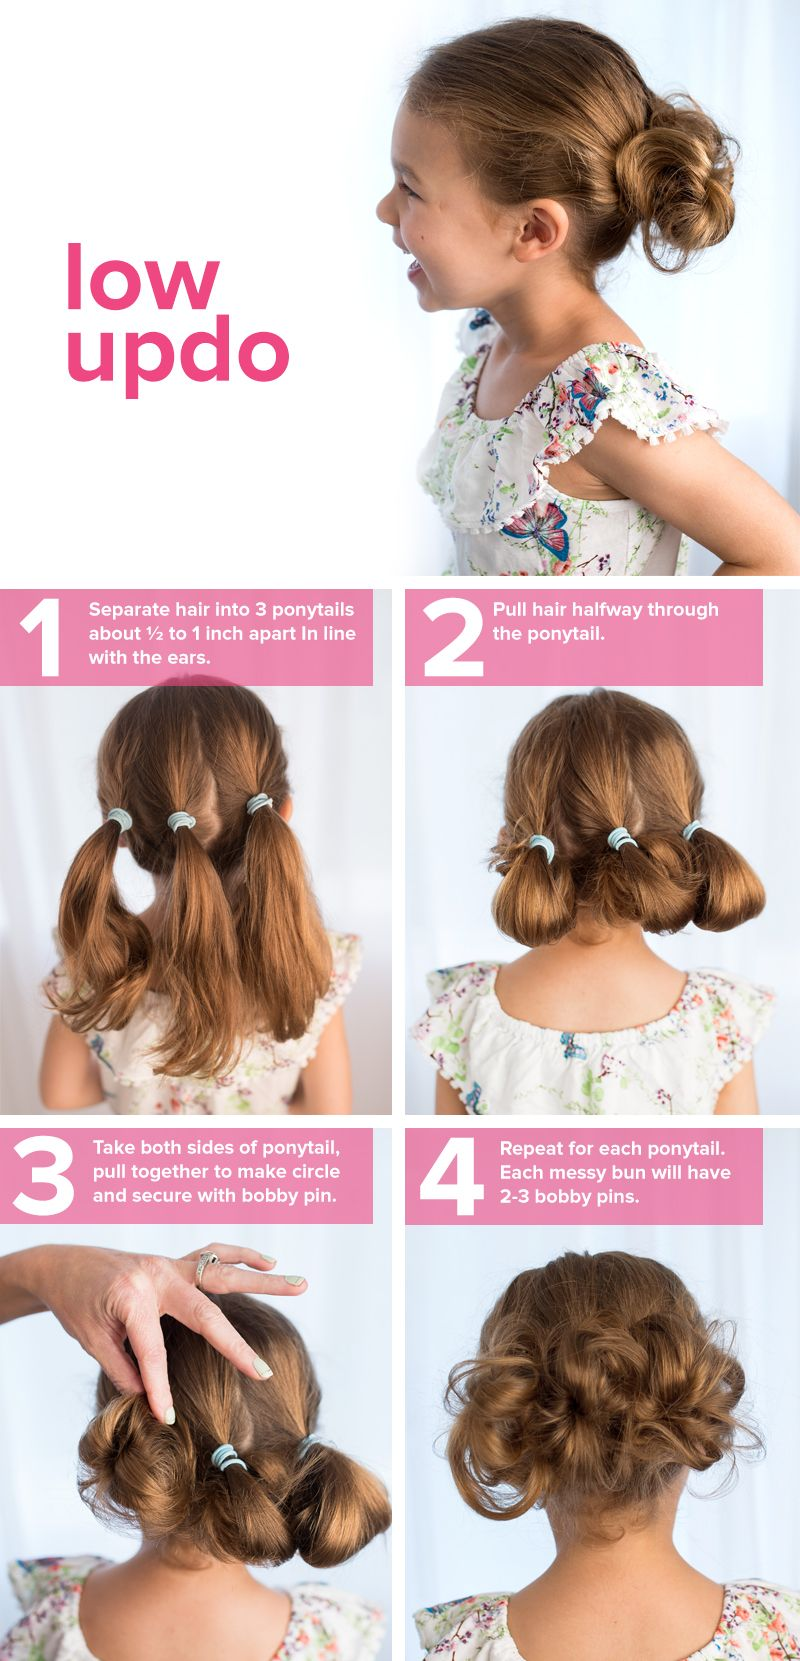 12 easy back-to school hairstyles for girls  Hair styles, Kids